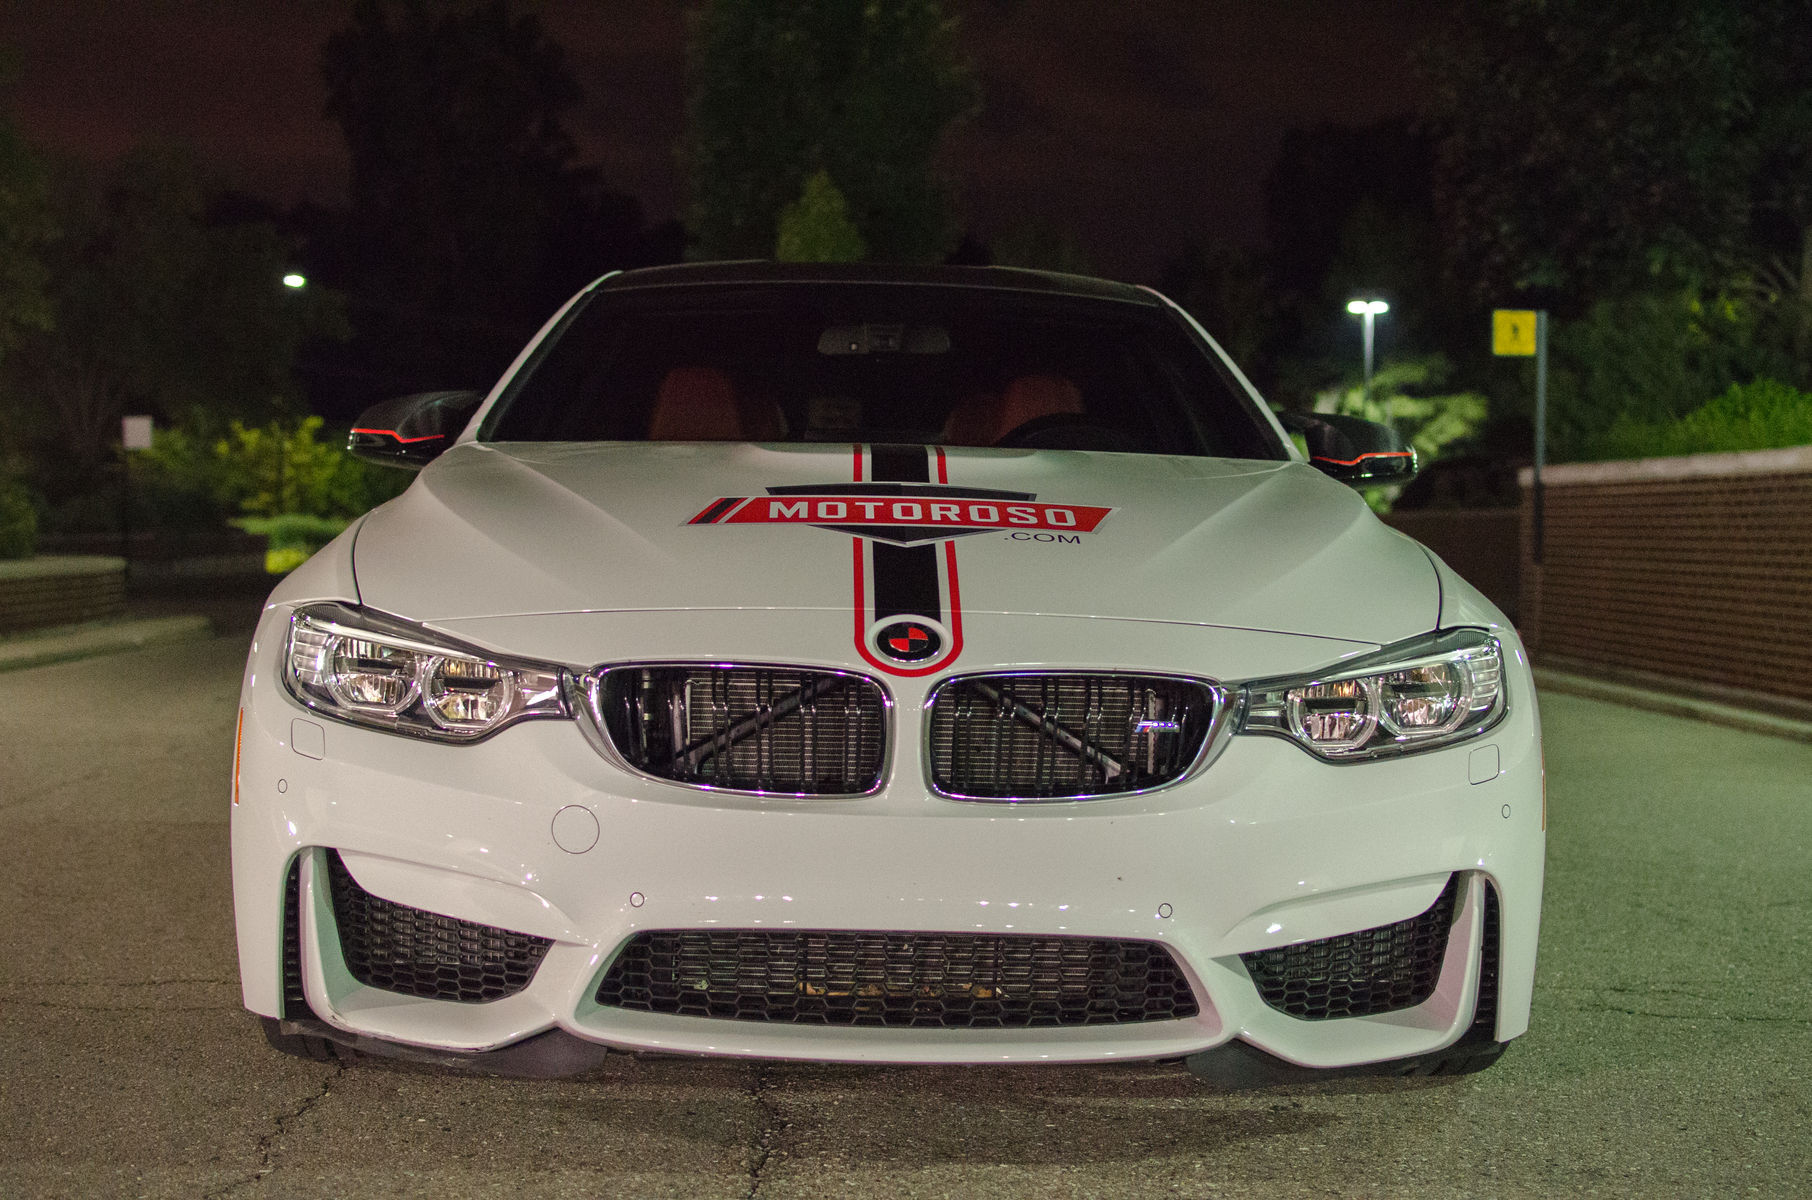 2015 BMW M4 | The Wrapped M4 - Front View